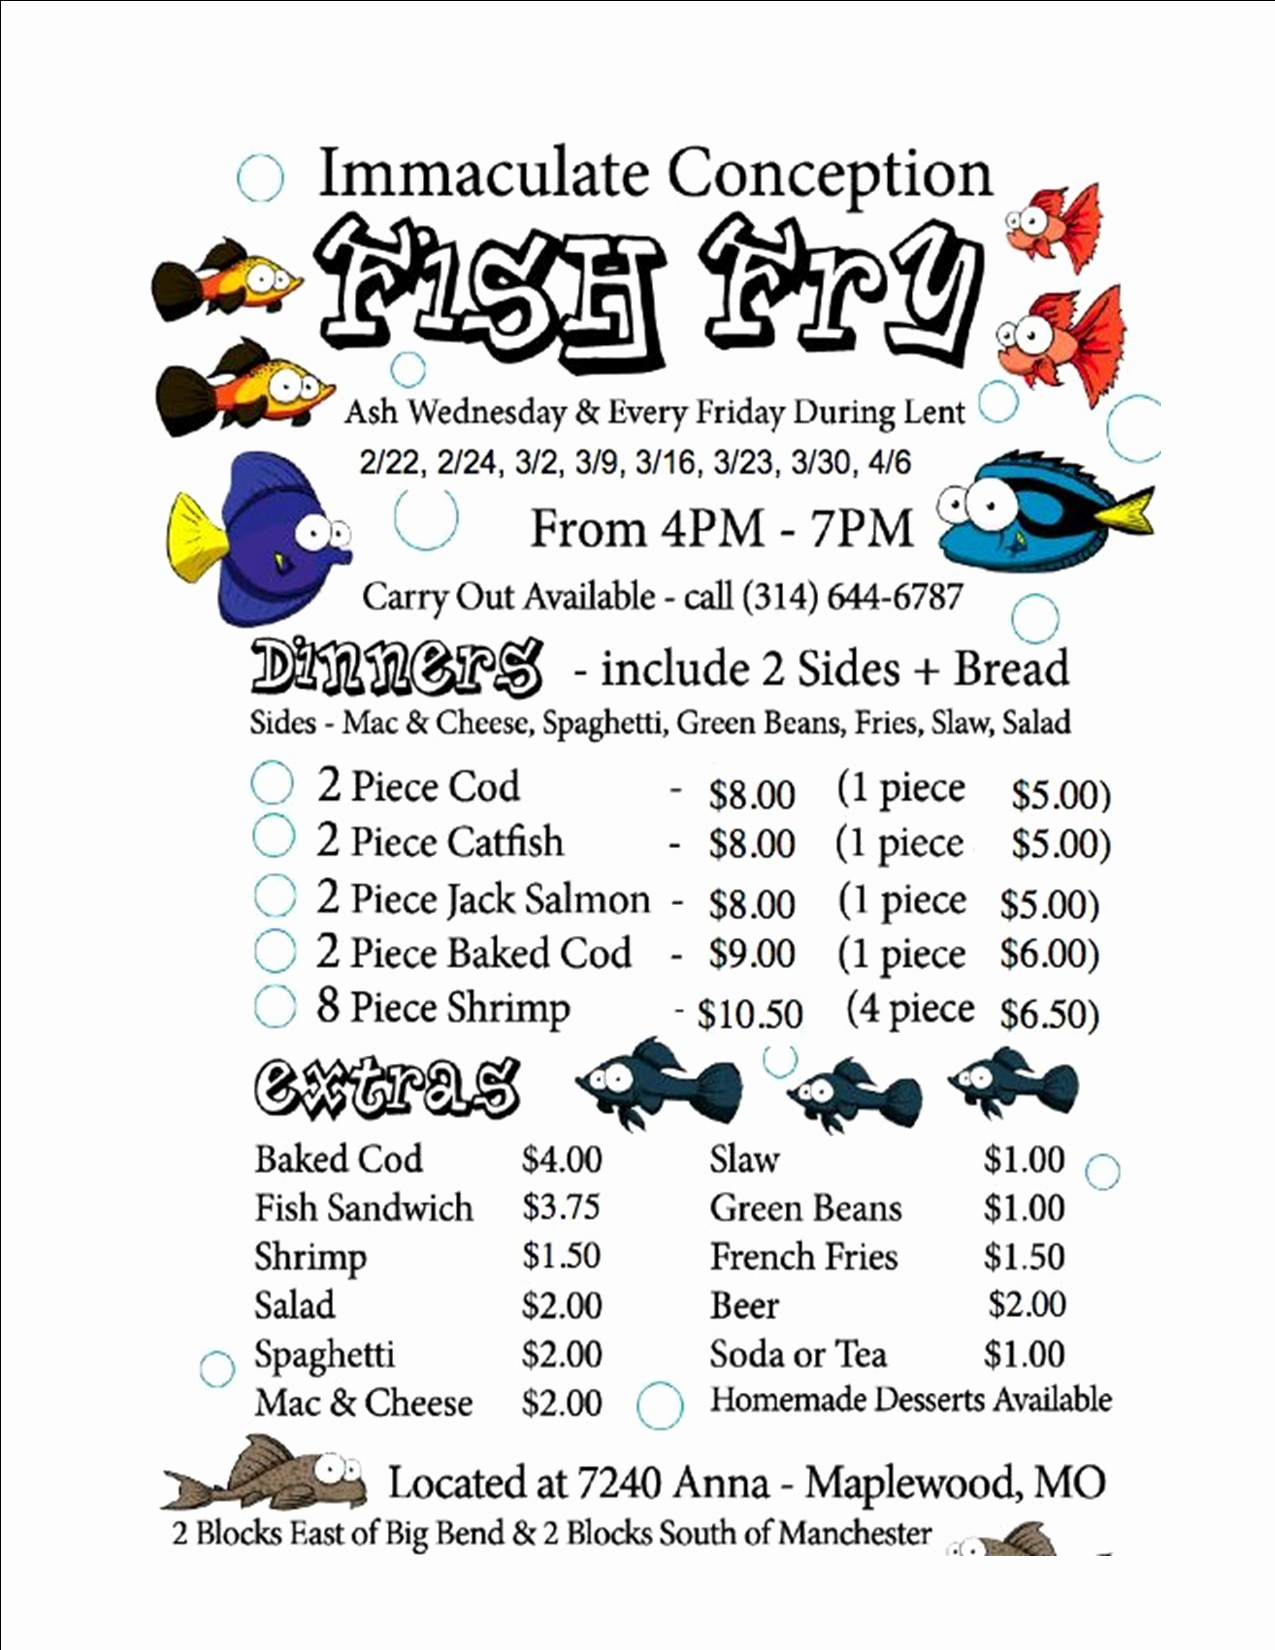 Free Fish Fry Flyer Templates Luxury Fish Fry Flyer 2012 – Immaculate Conception Parish